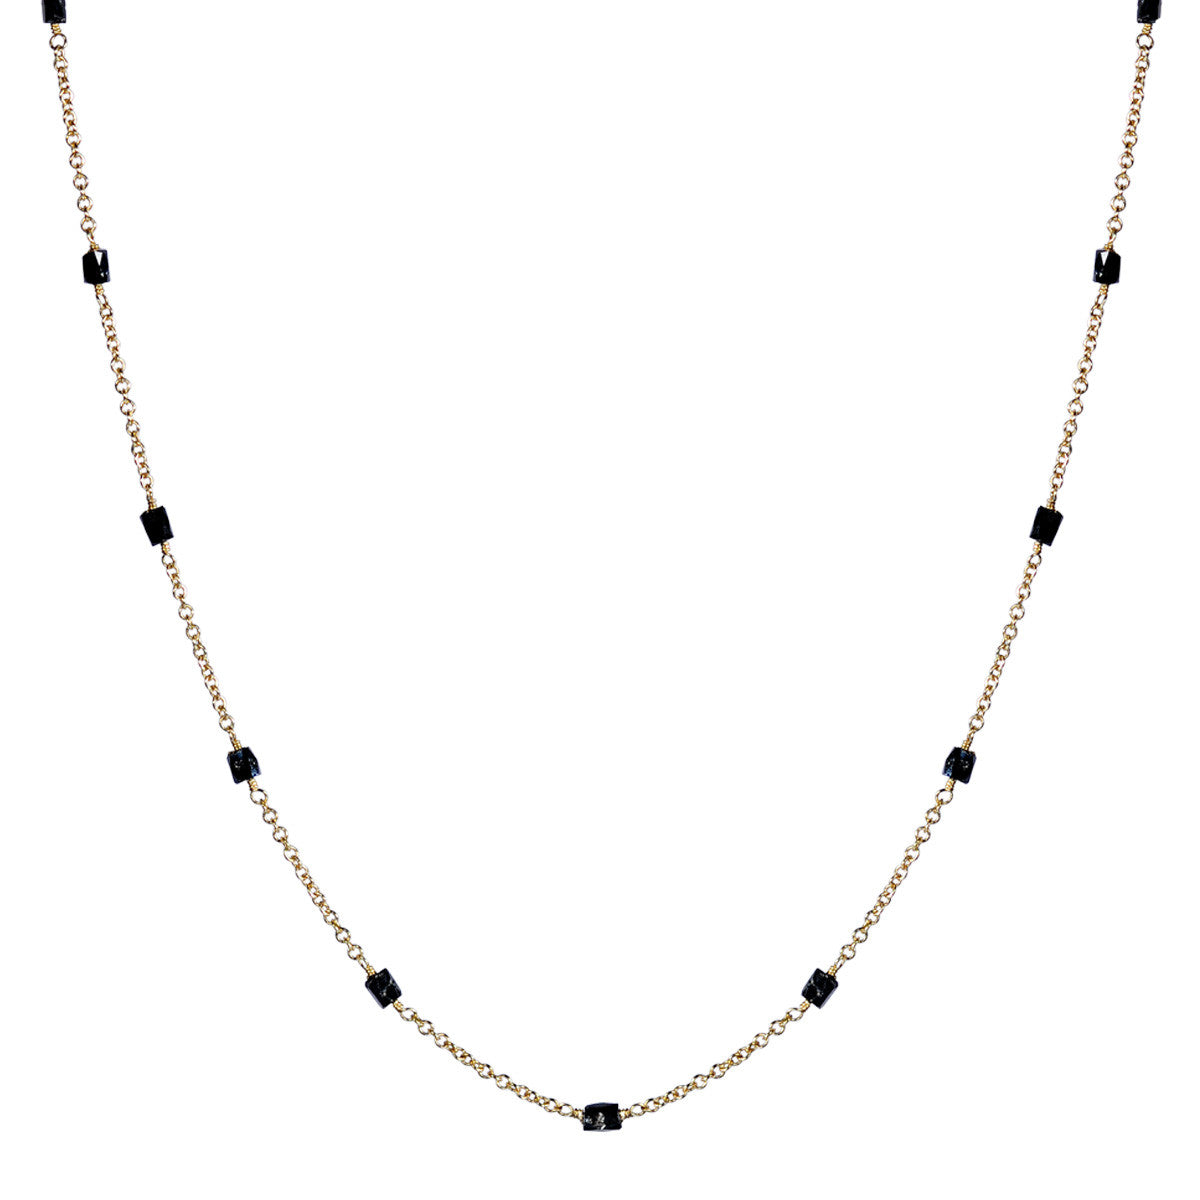 18K Gold Black Diamond Bead Chain